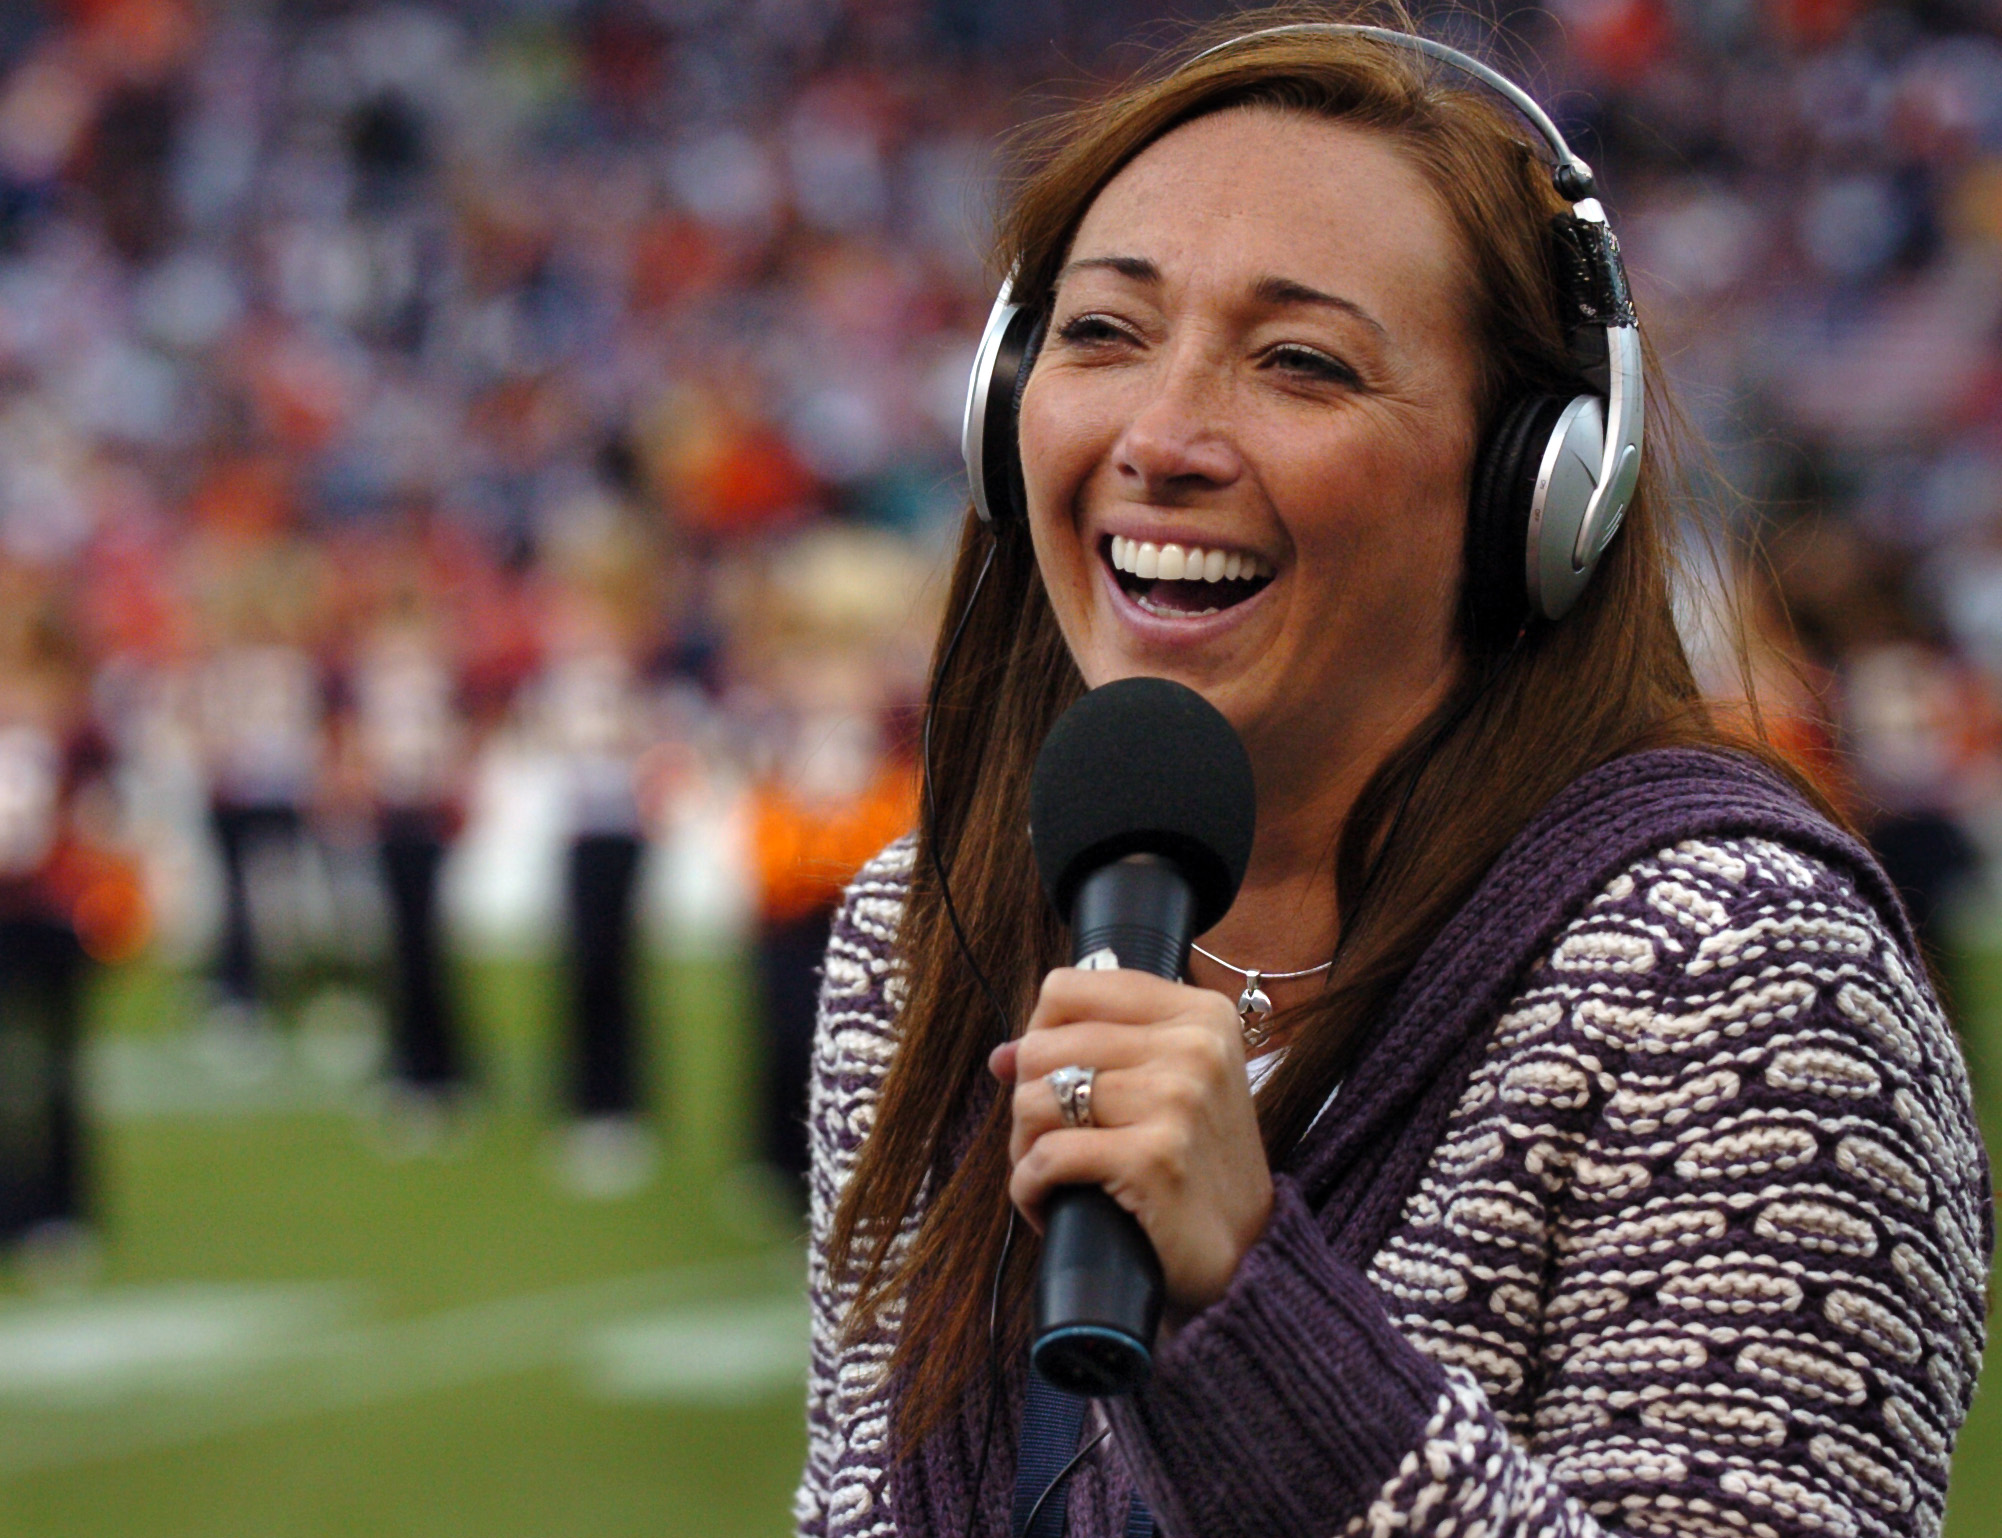 Amy Van Dyken reporting on the Broncos vs the San Diego Chargers on Sunday, October 7th, 2007 at Invesco Field.